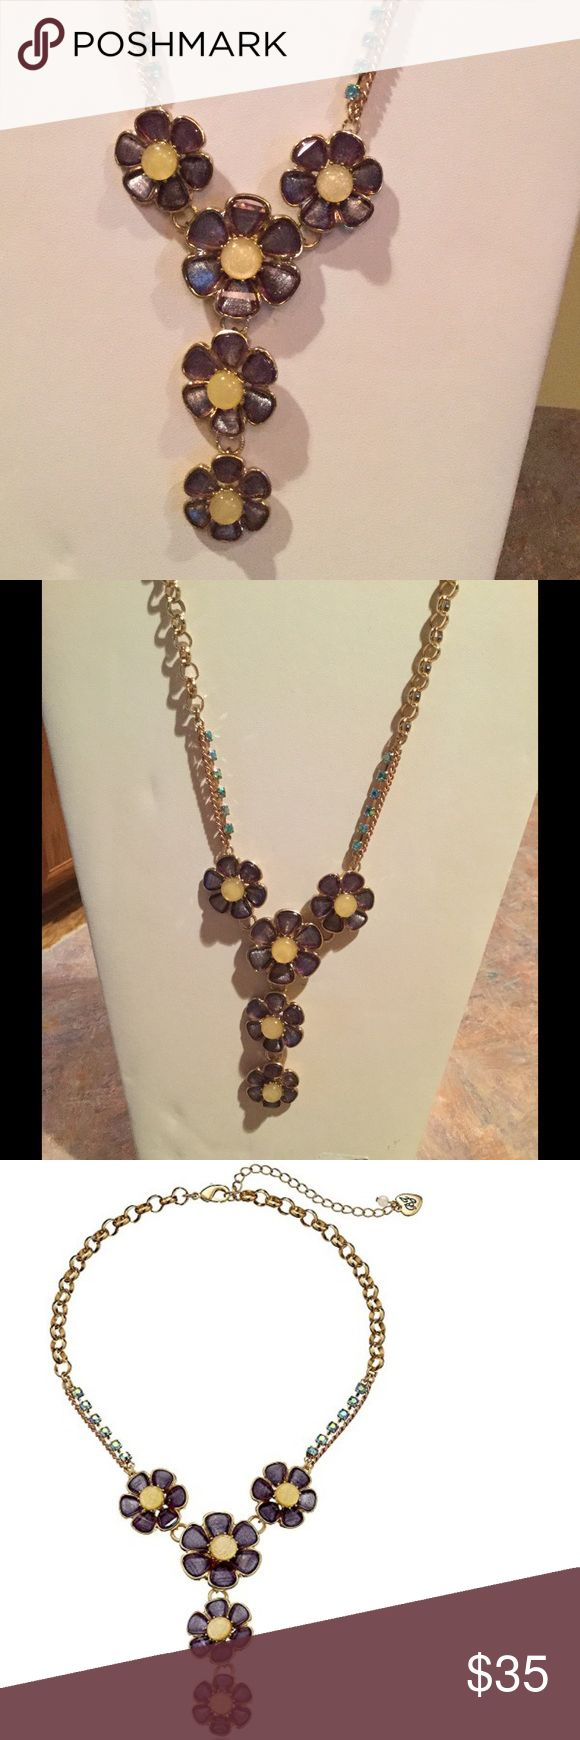 """NWT Betsey Johnson Spring Ahead Flower Y necklace NWT Betsey Johnson purple flower y shaped necklace; 16"""" with a 3"""" extender; goldtone chain with blue rhinestone part way up Betsey Johnson Jewelry Necklaces"""